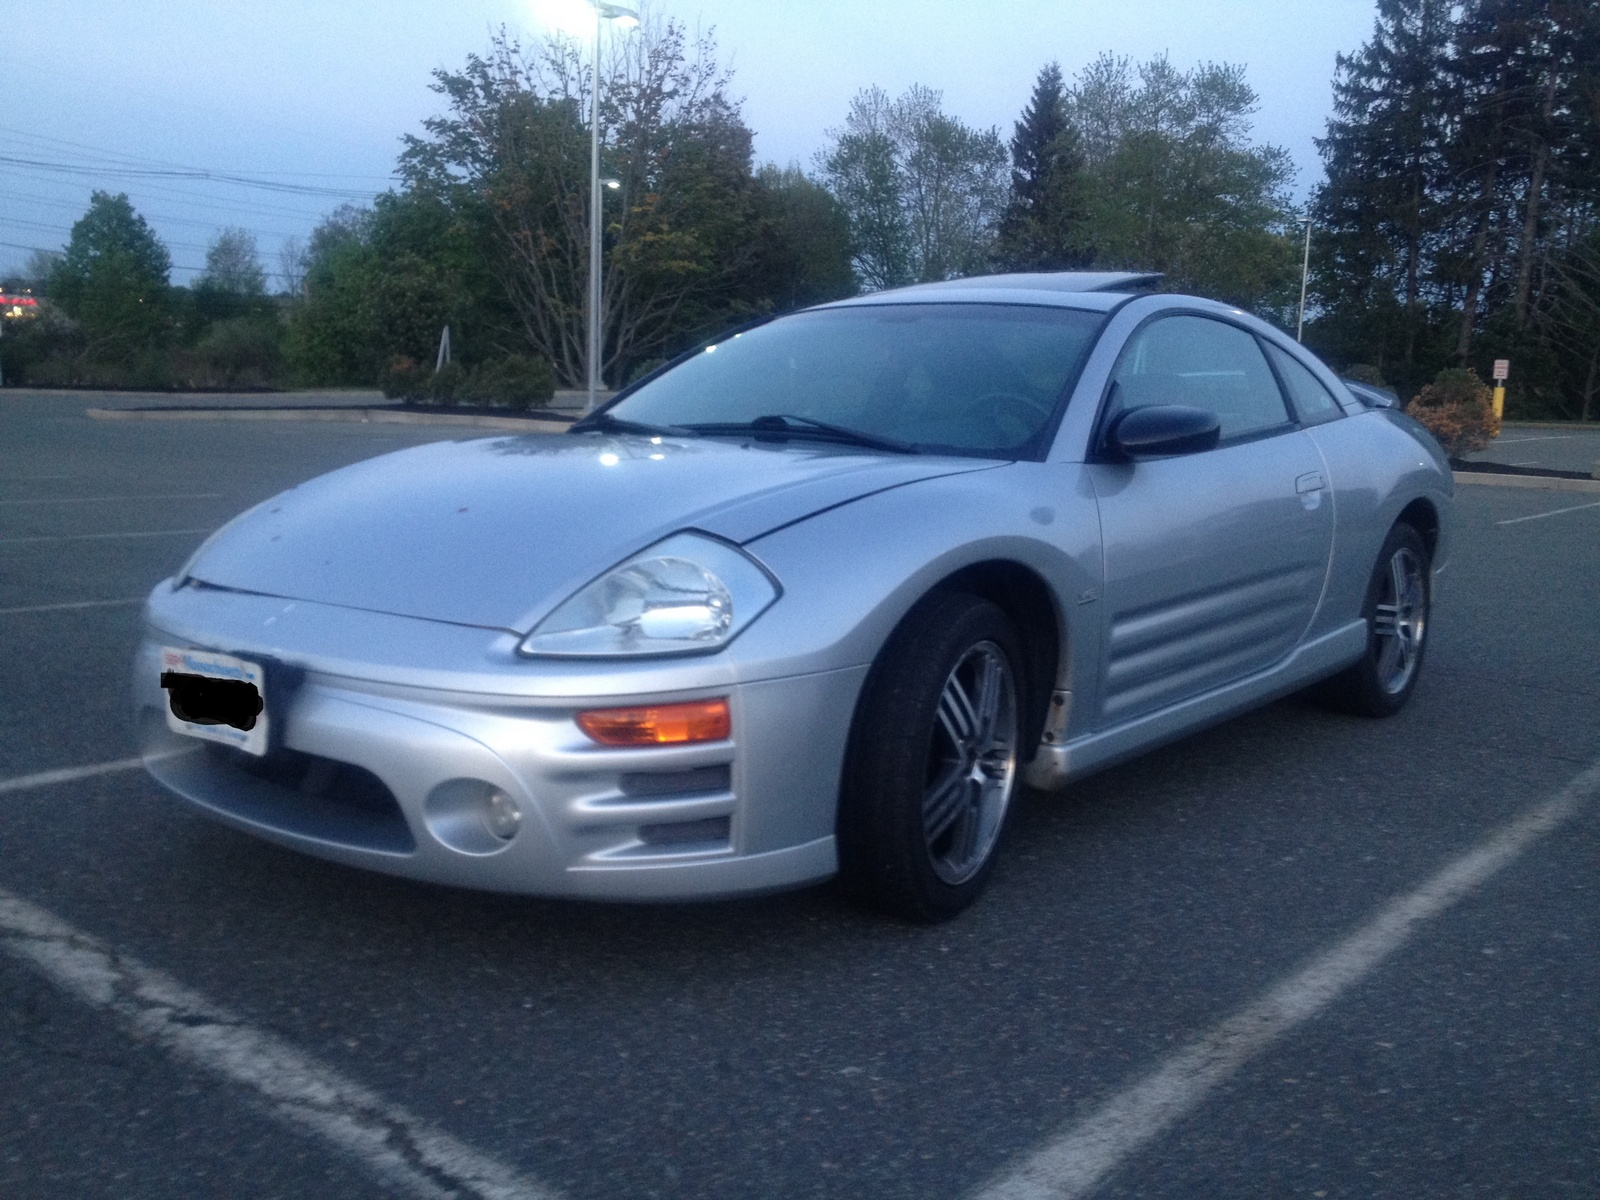 Carros De Velozes E Furiosos besides 4r1ie Mitsubishi Eclipse Gs 2003 Eclipse Showing besides 2002 Lincoln Navigator Pcm Fuse Box Diagram furthermore FM6 Start Your Engines in addition 2003 Mitsubishi Eclipse 3 0 Fuse Box Diagram. on 03 eclipse gs